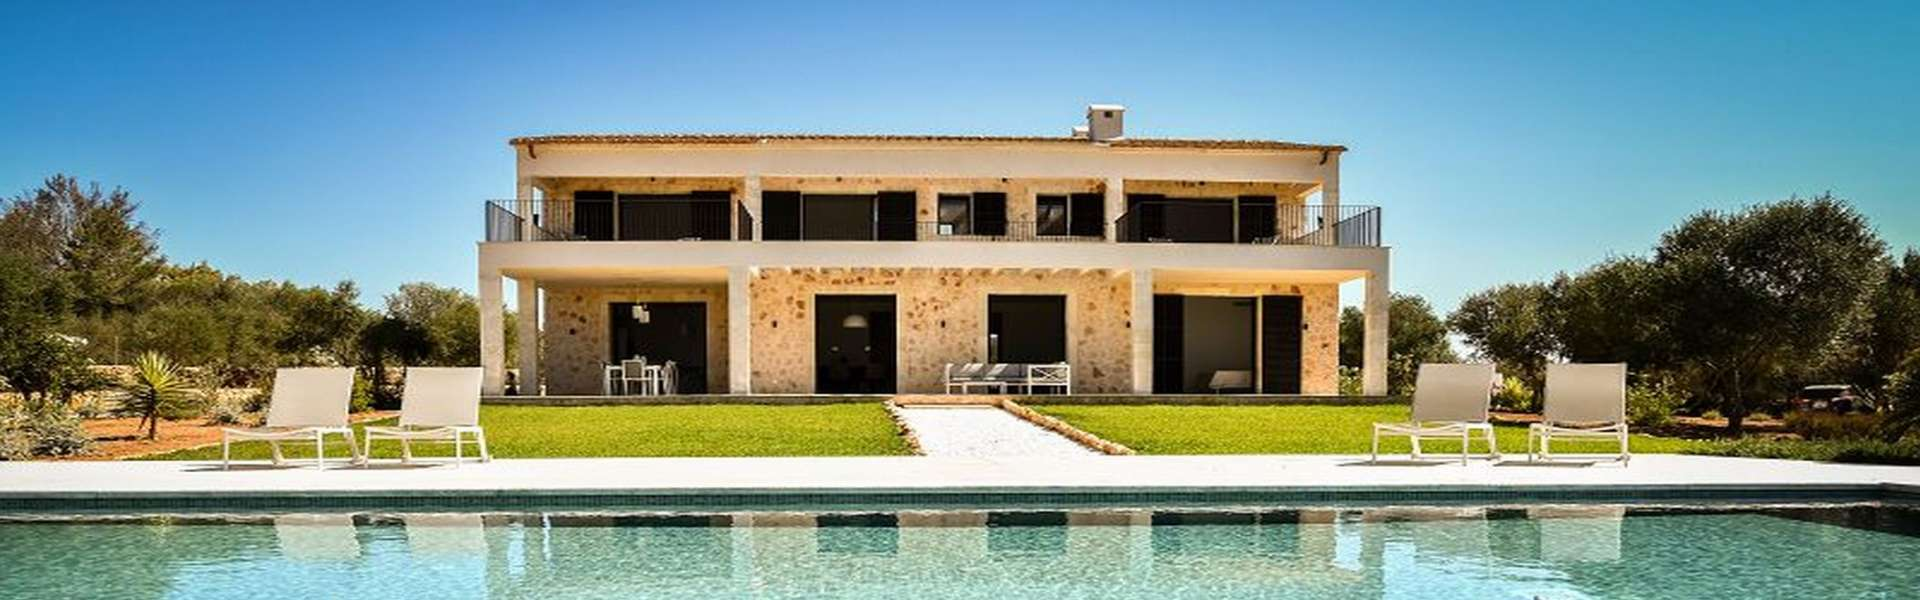 Ses Salines - Modern country house with fantastic view to the island Cabrera